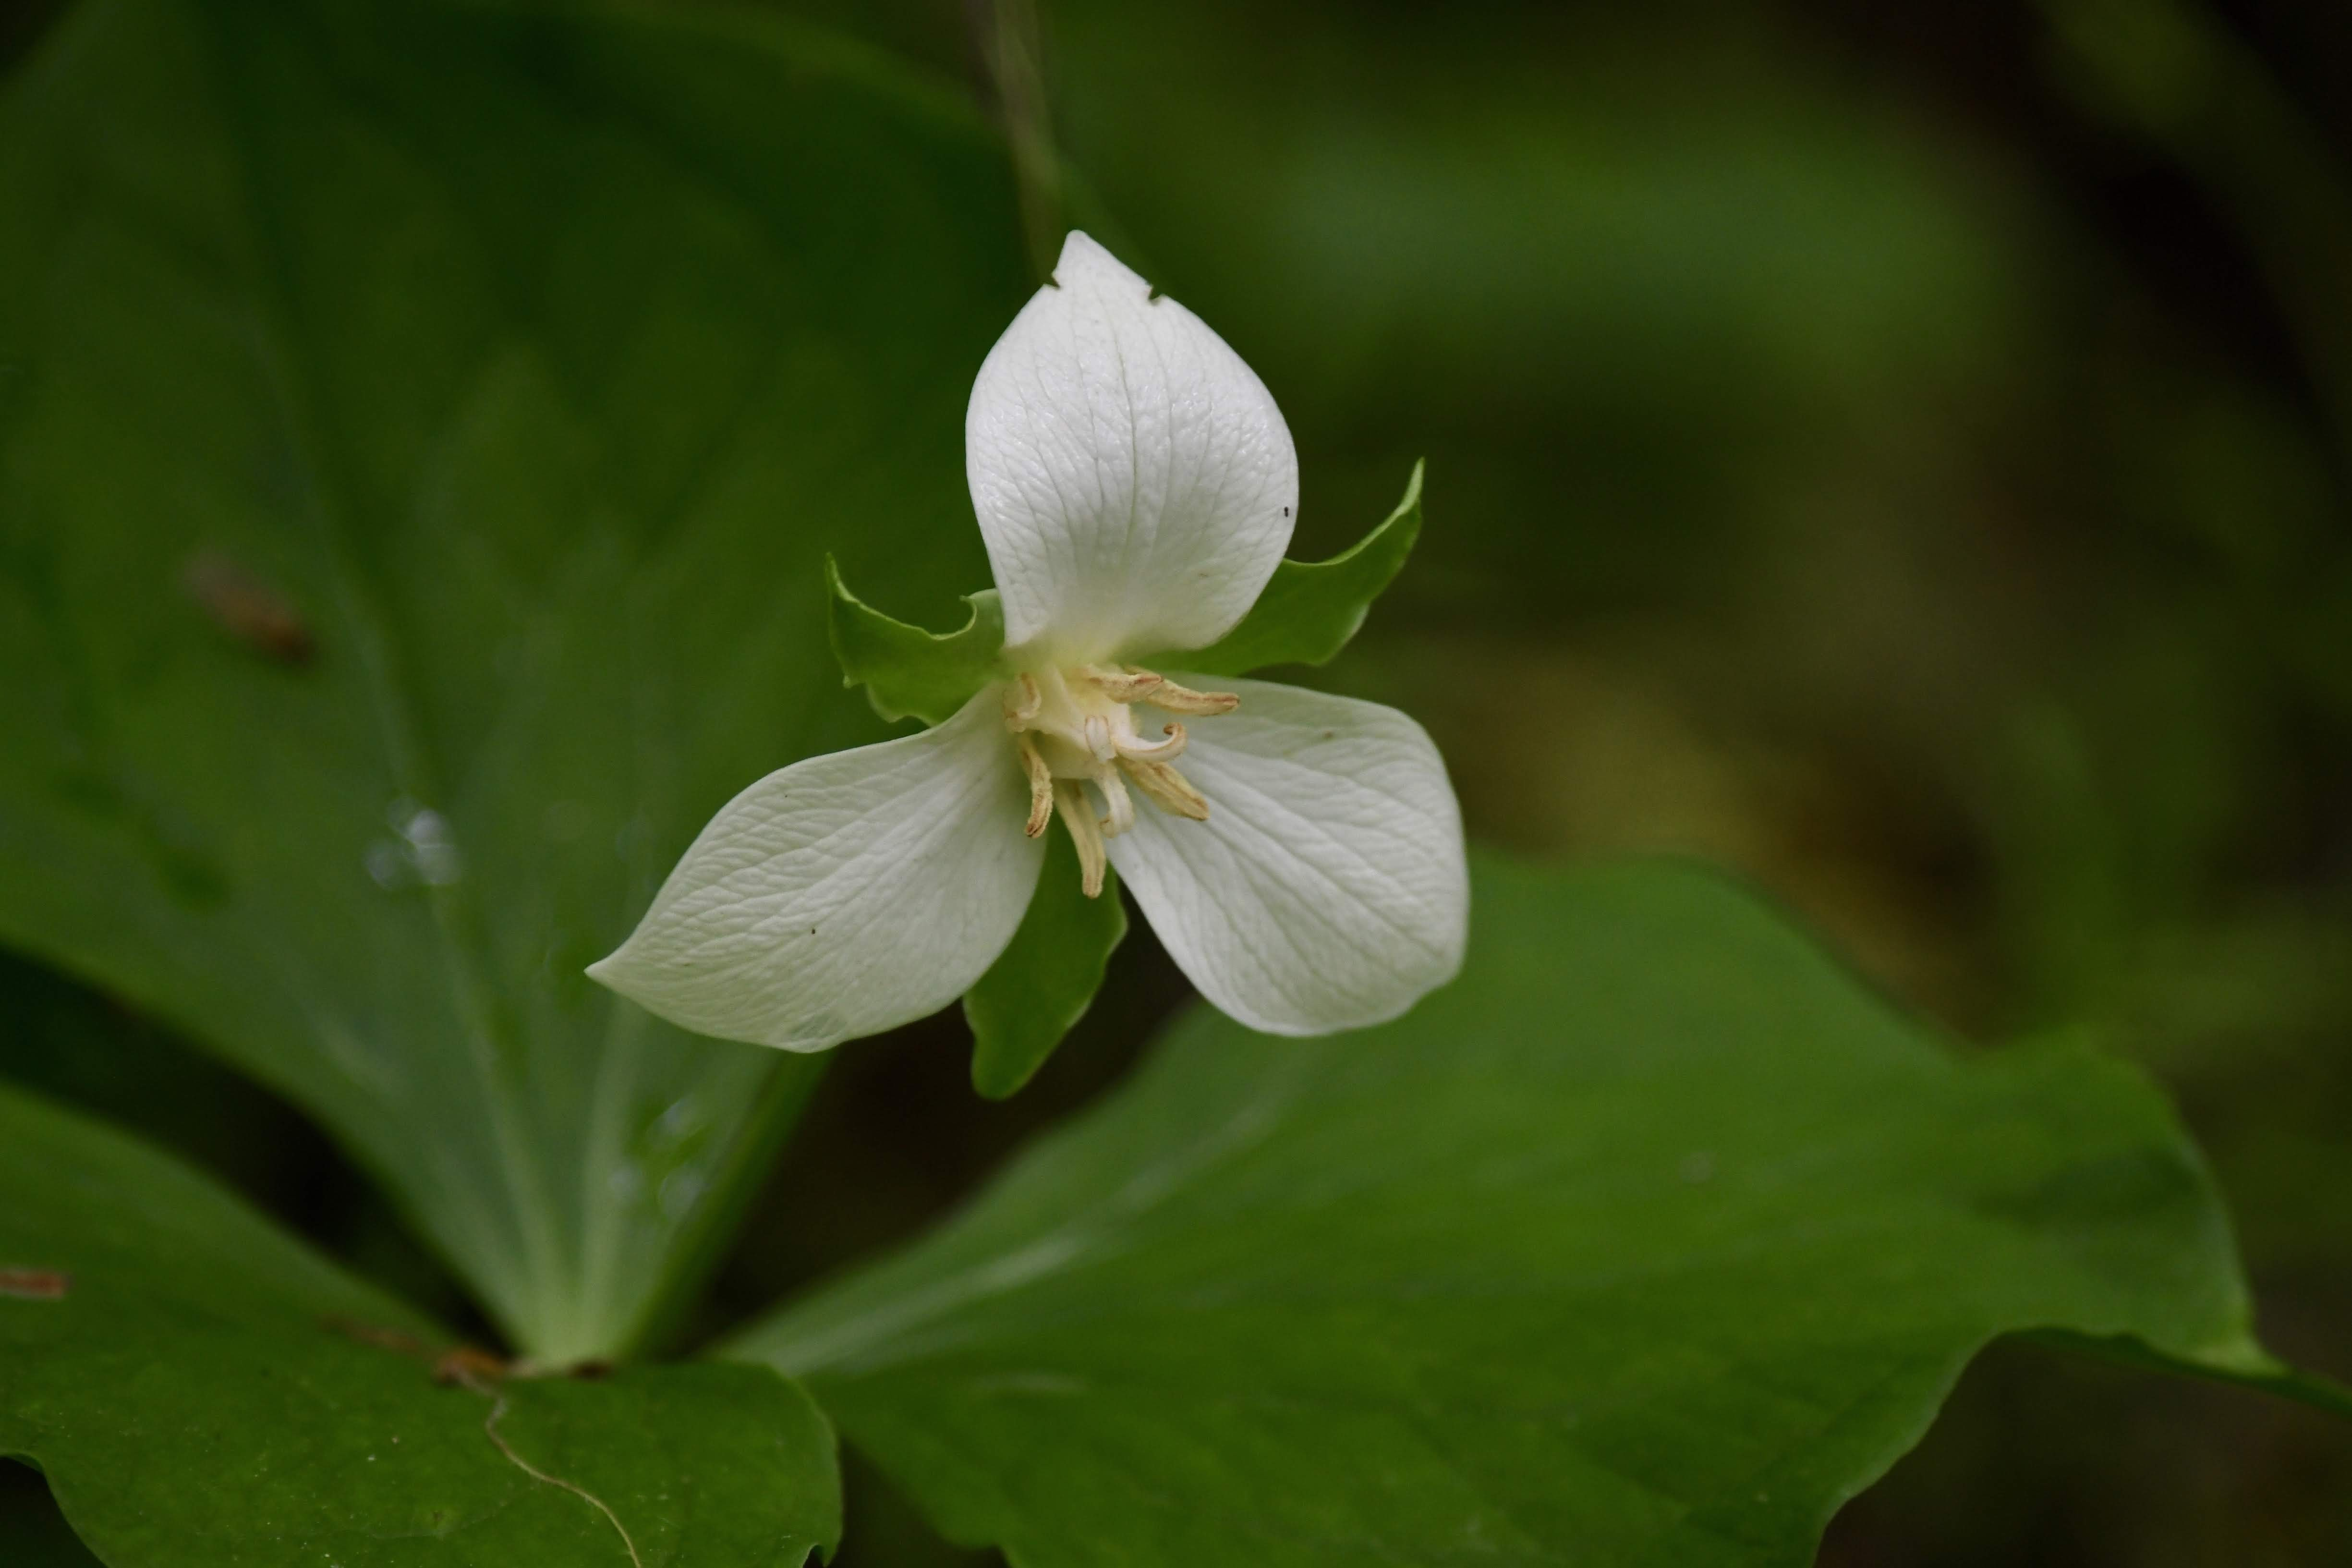 A newly bloomed drooping trillium (Trillium flexipes) shows off its eponymous petals.